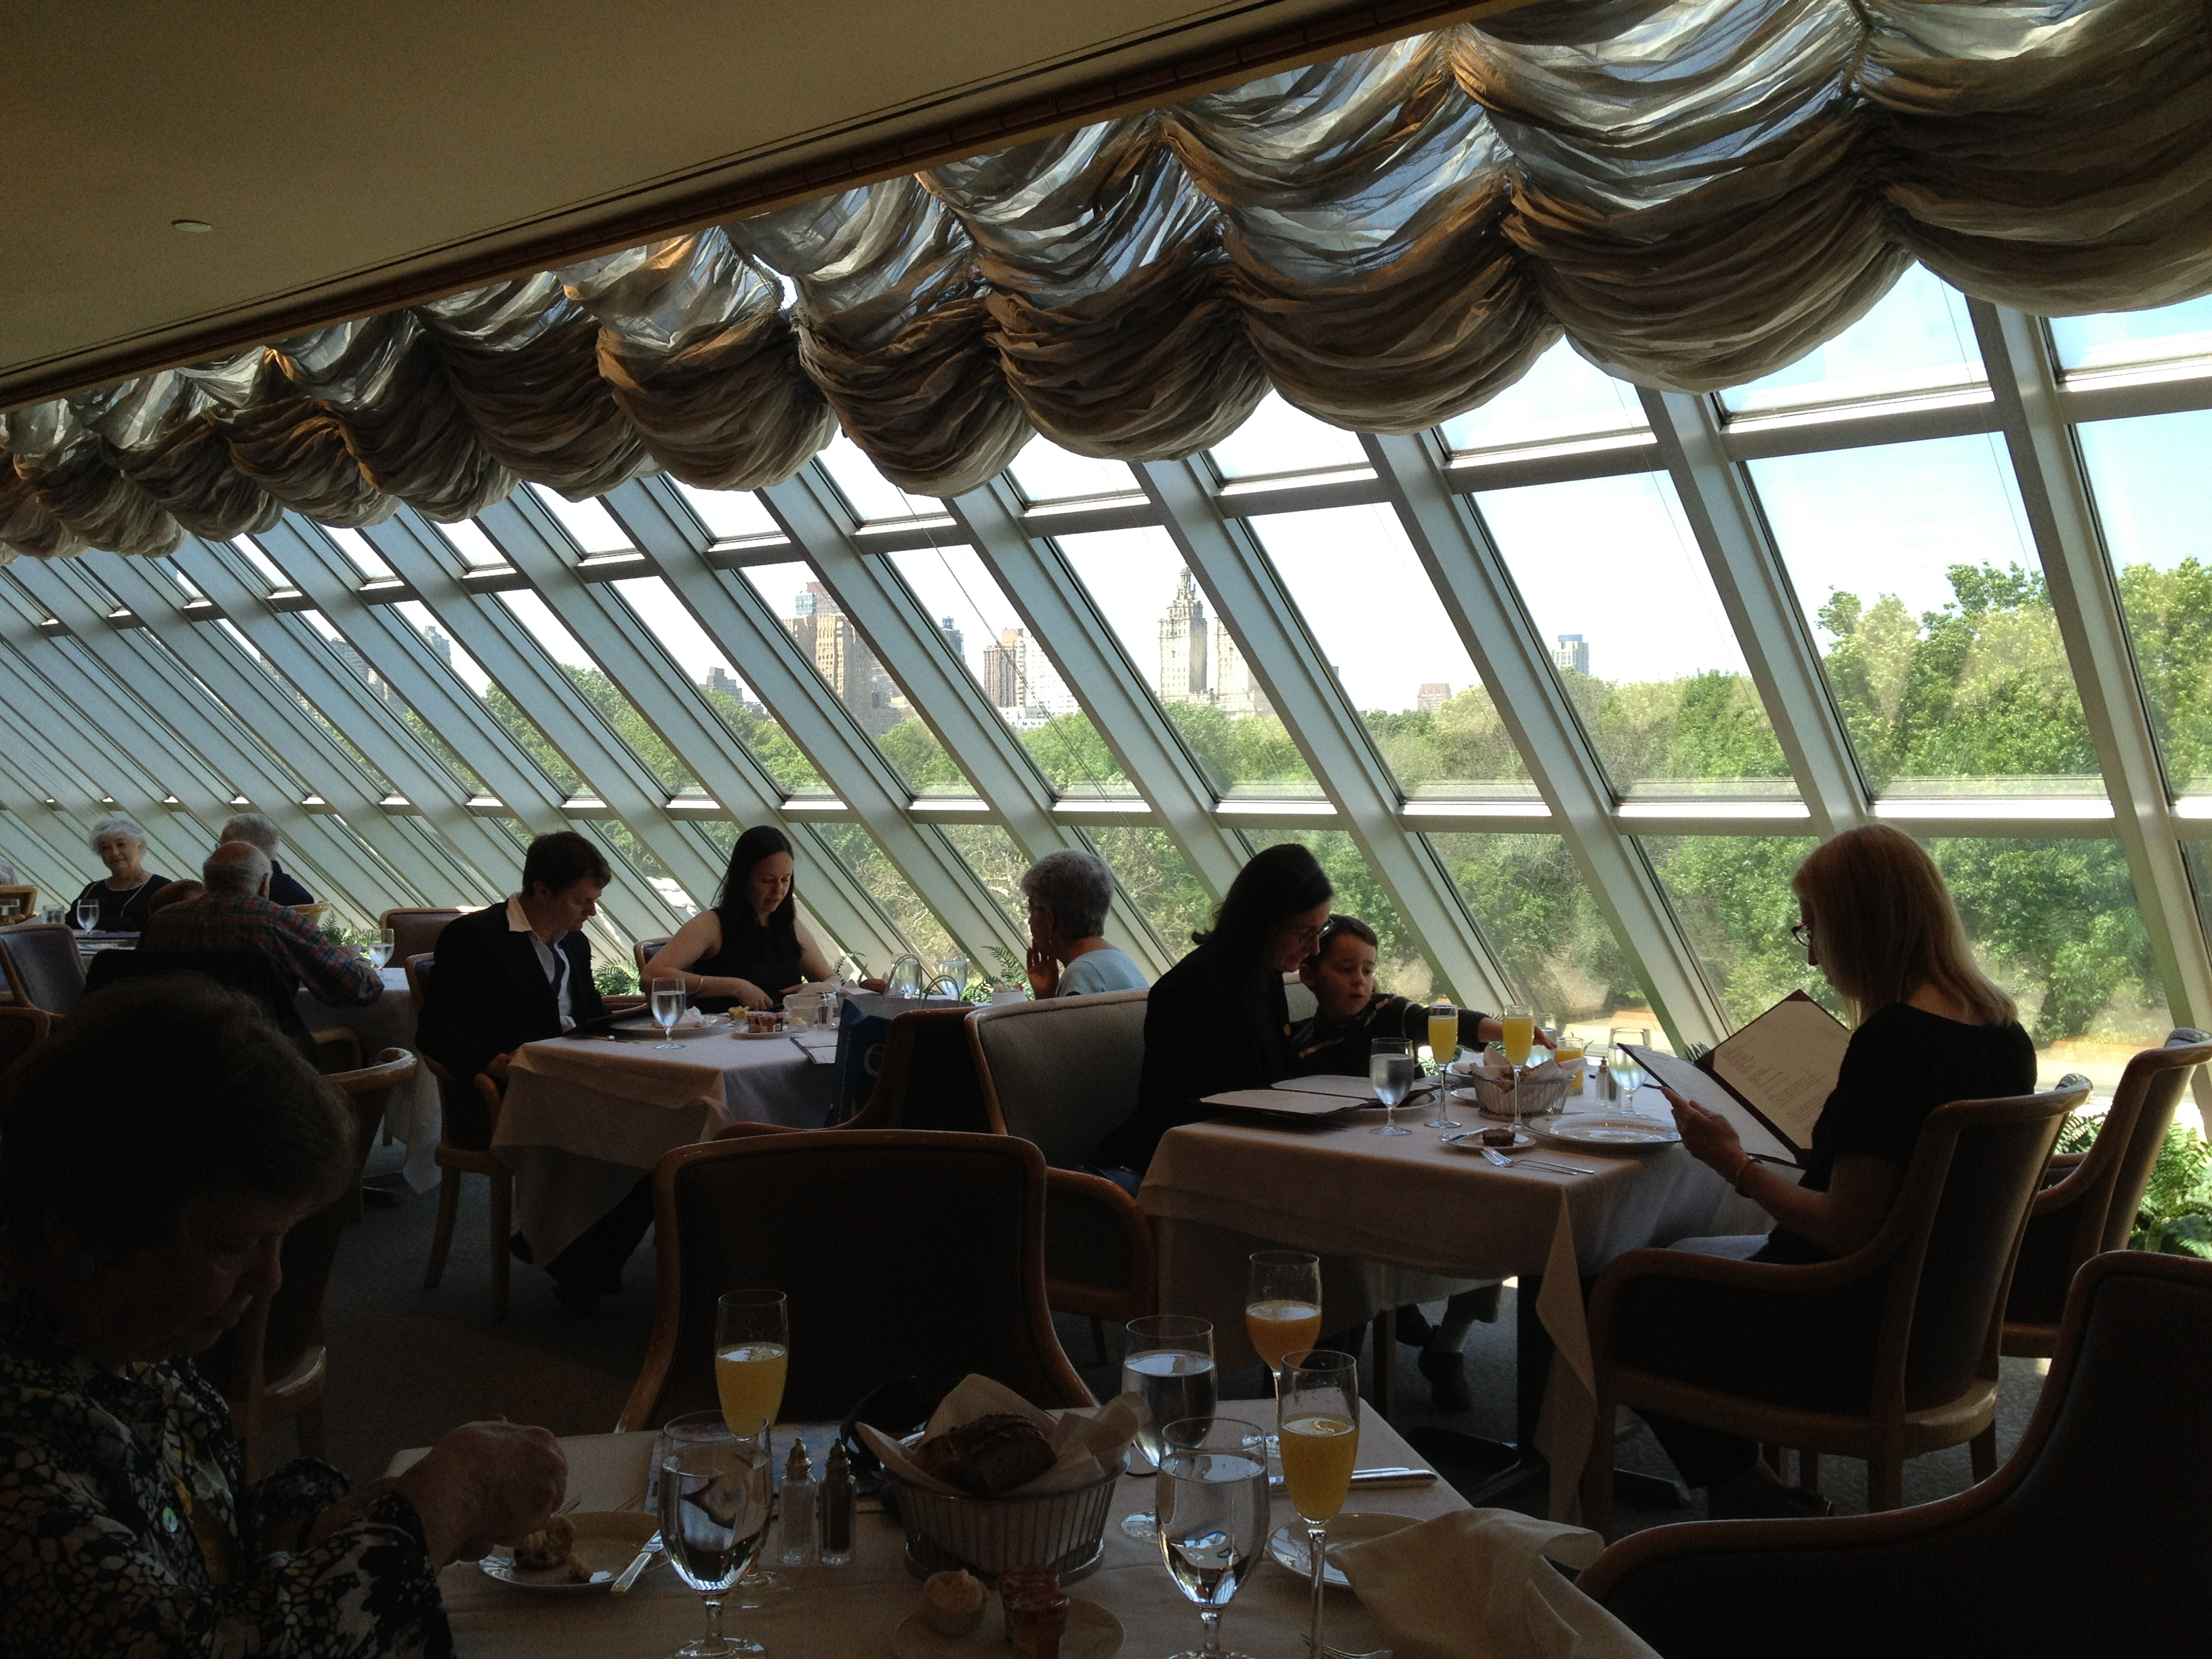 ellen lindner art creativity blog archive a visit On dining room at the met